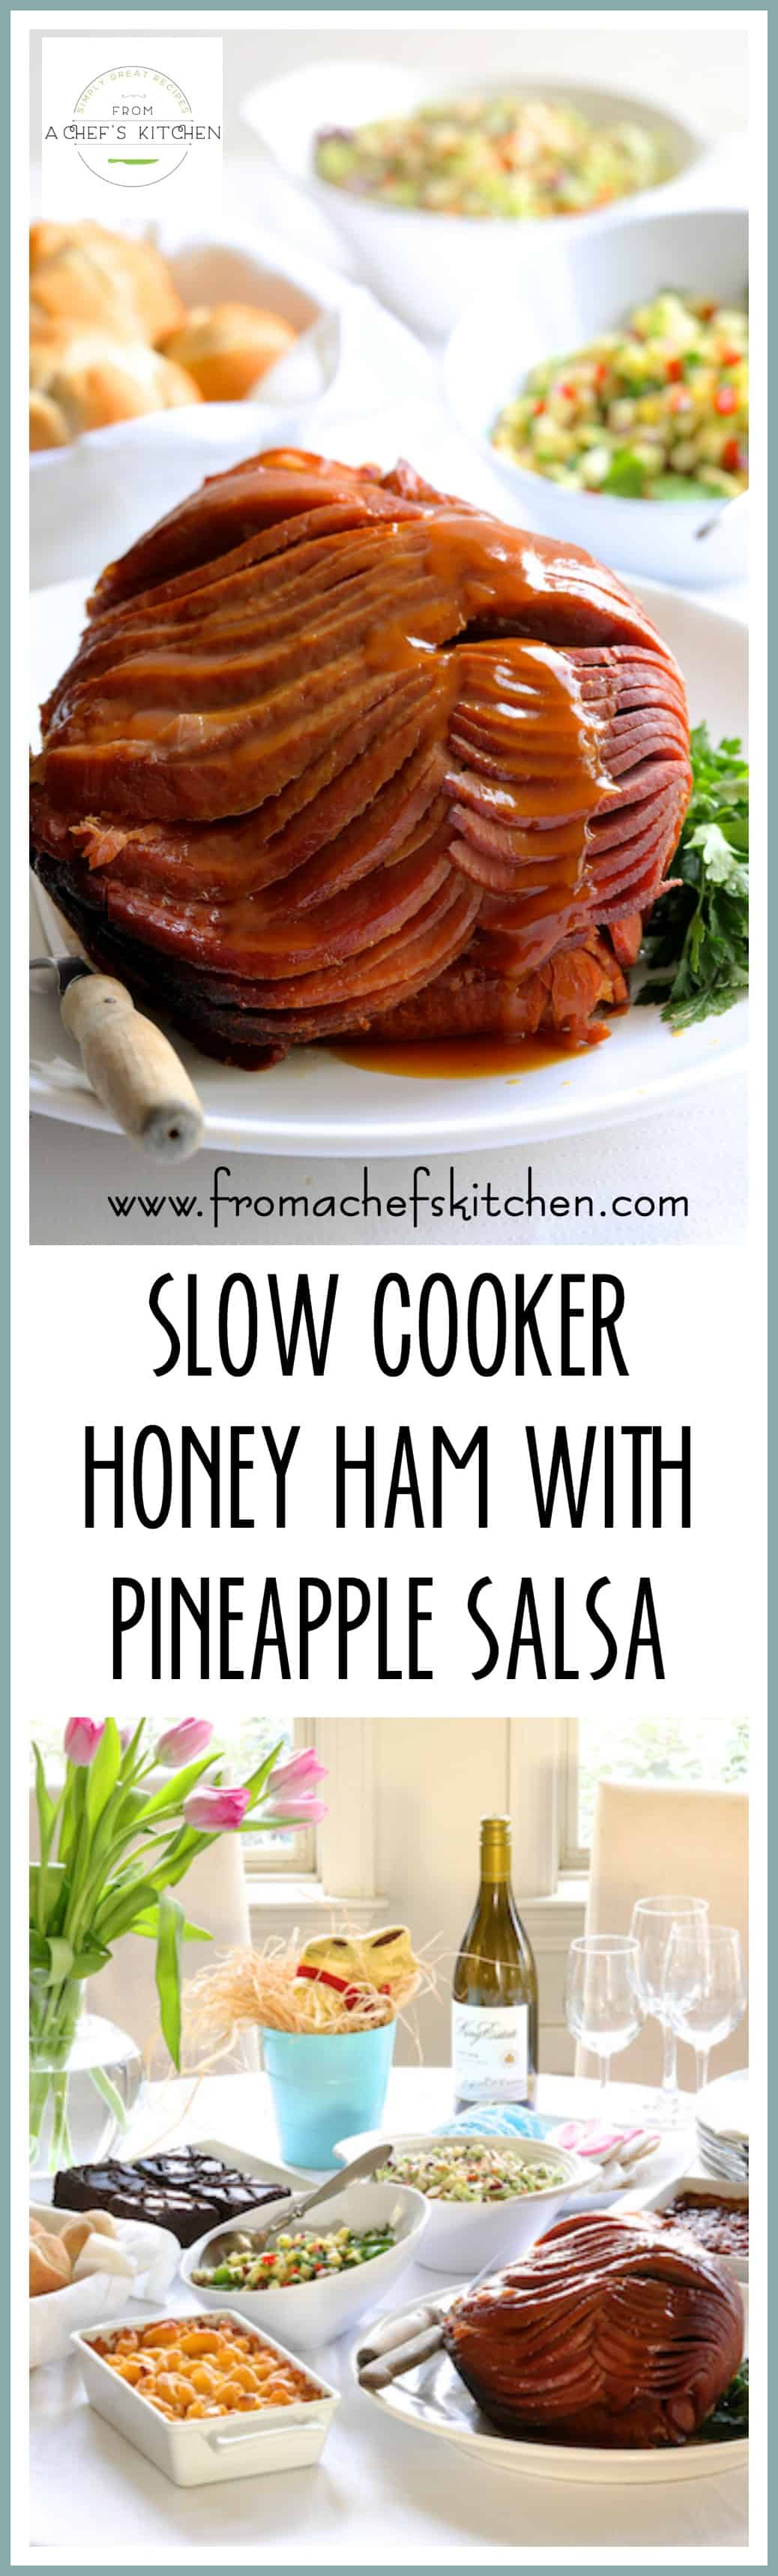 Msg 4 21+ #TFMEasterBasket #TheFreshMarket #CollectiveBias #AD - Slow Cooker Honey Ham with Pineapple Salsa and The Fresh Market Easter Meal is the way to a beautiful and stress-free Easter celebration! @TheFreshMarket